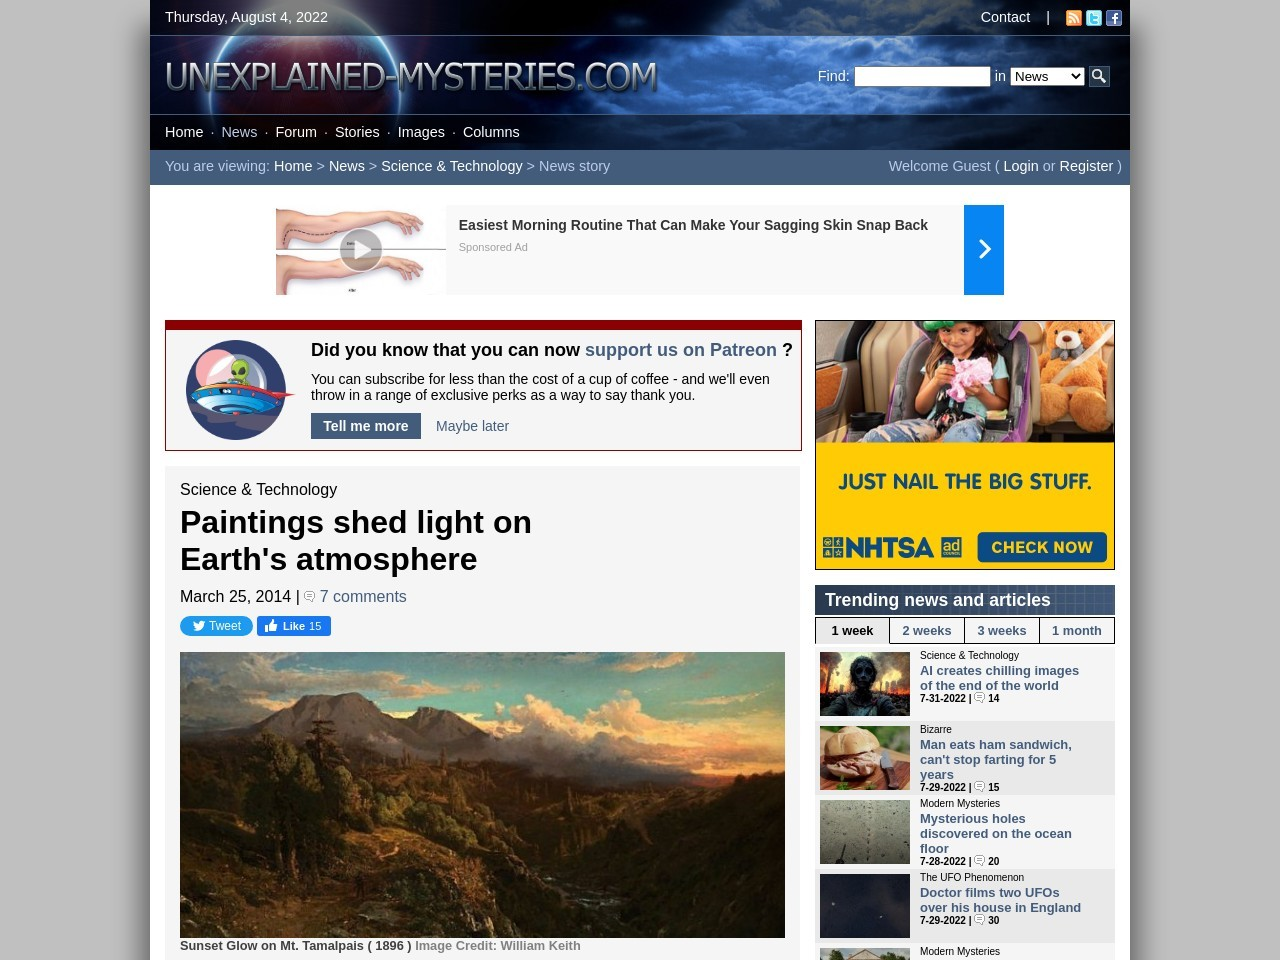 Paintings shed light on Earth's atmosphere